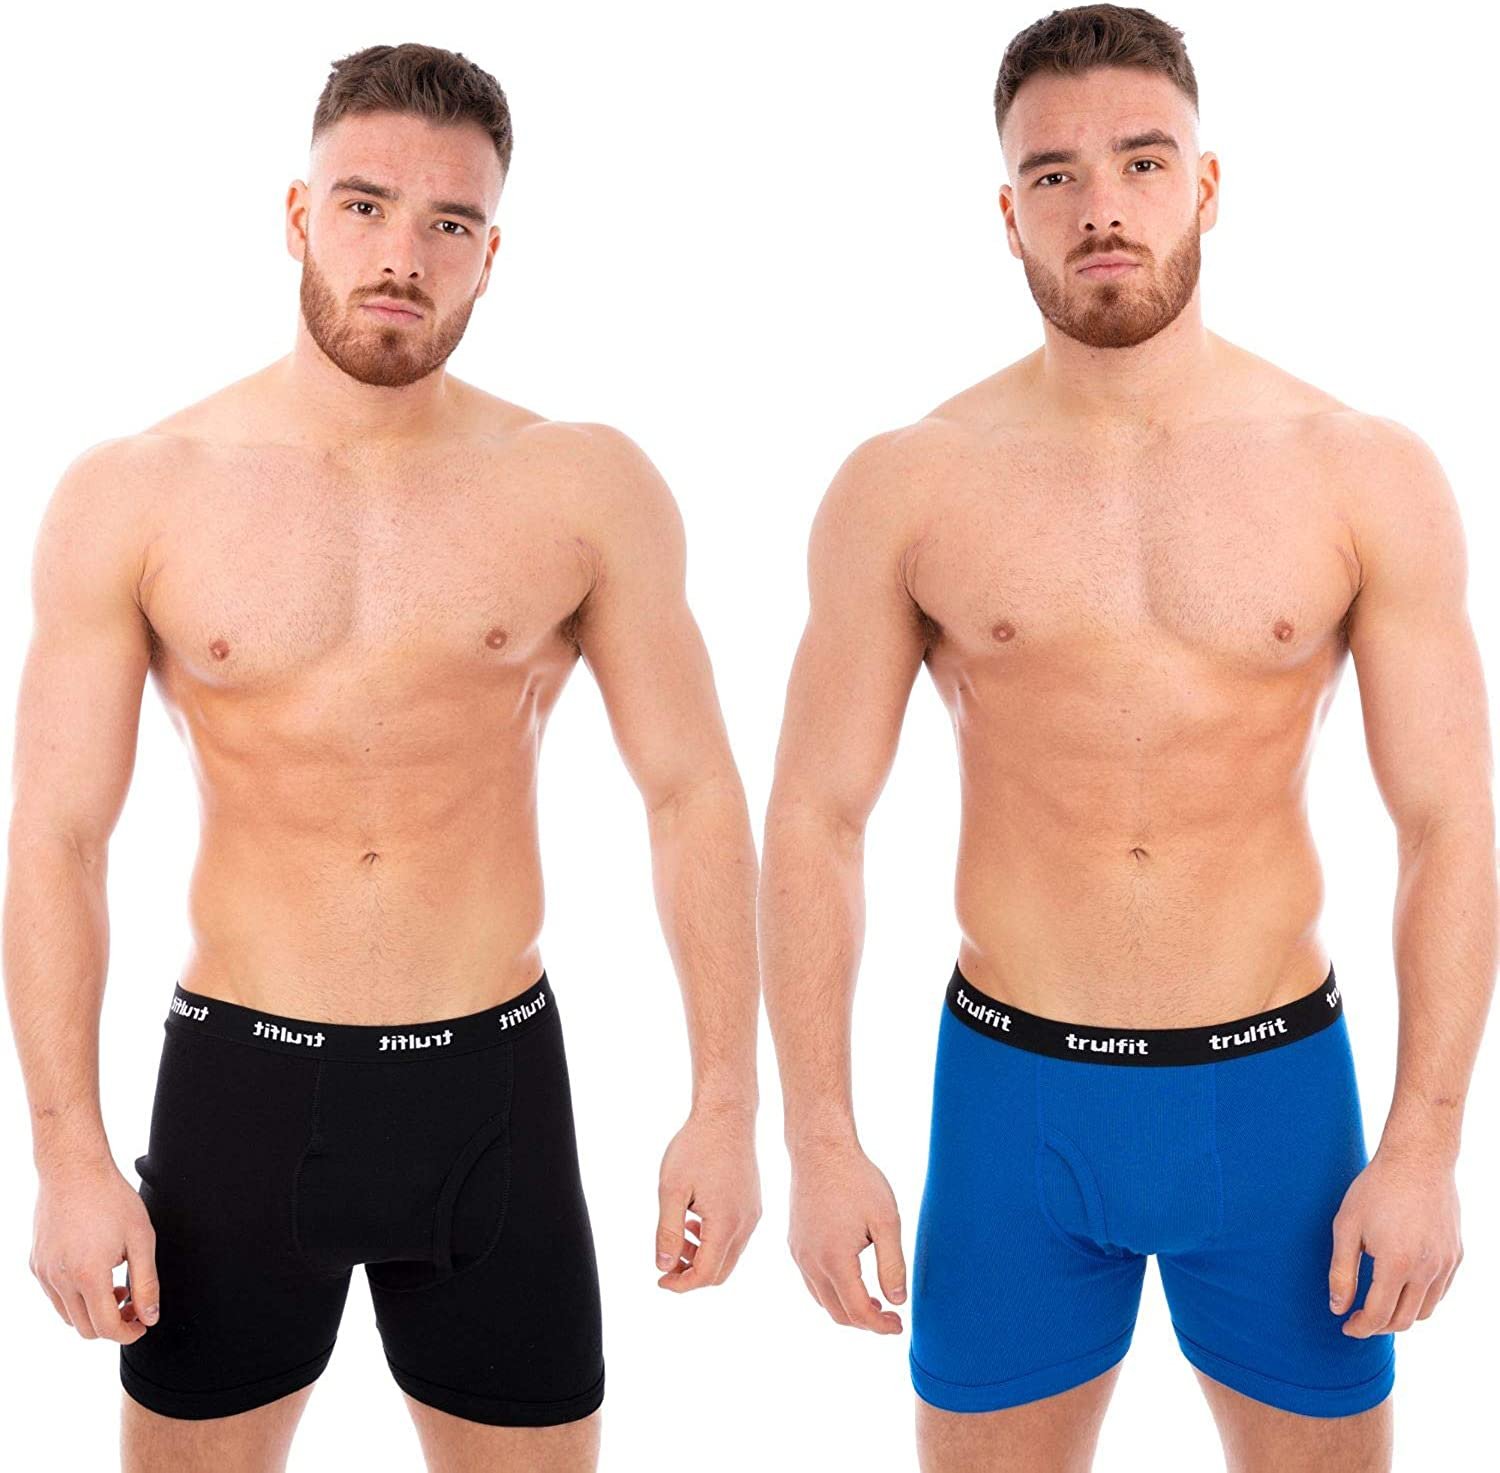 MULTIPACK MENS PLAIN BLACK CHRISTMAS GIFT BOXERs SHORTS UNDERWEAR HIPSTERs PANTS